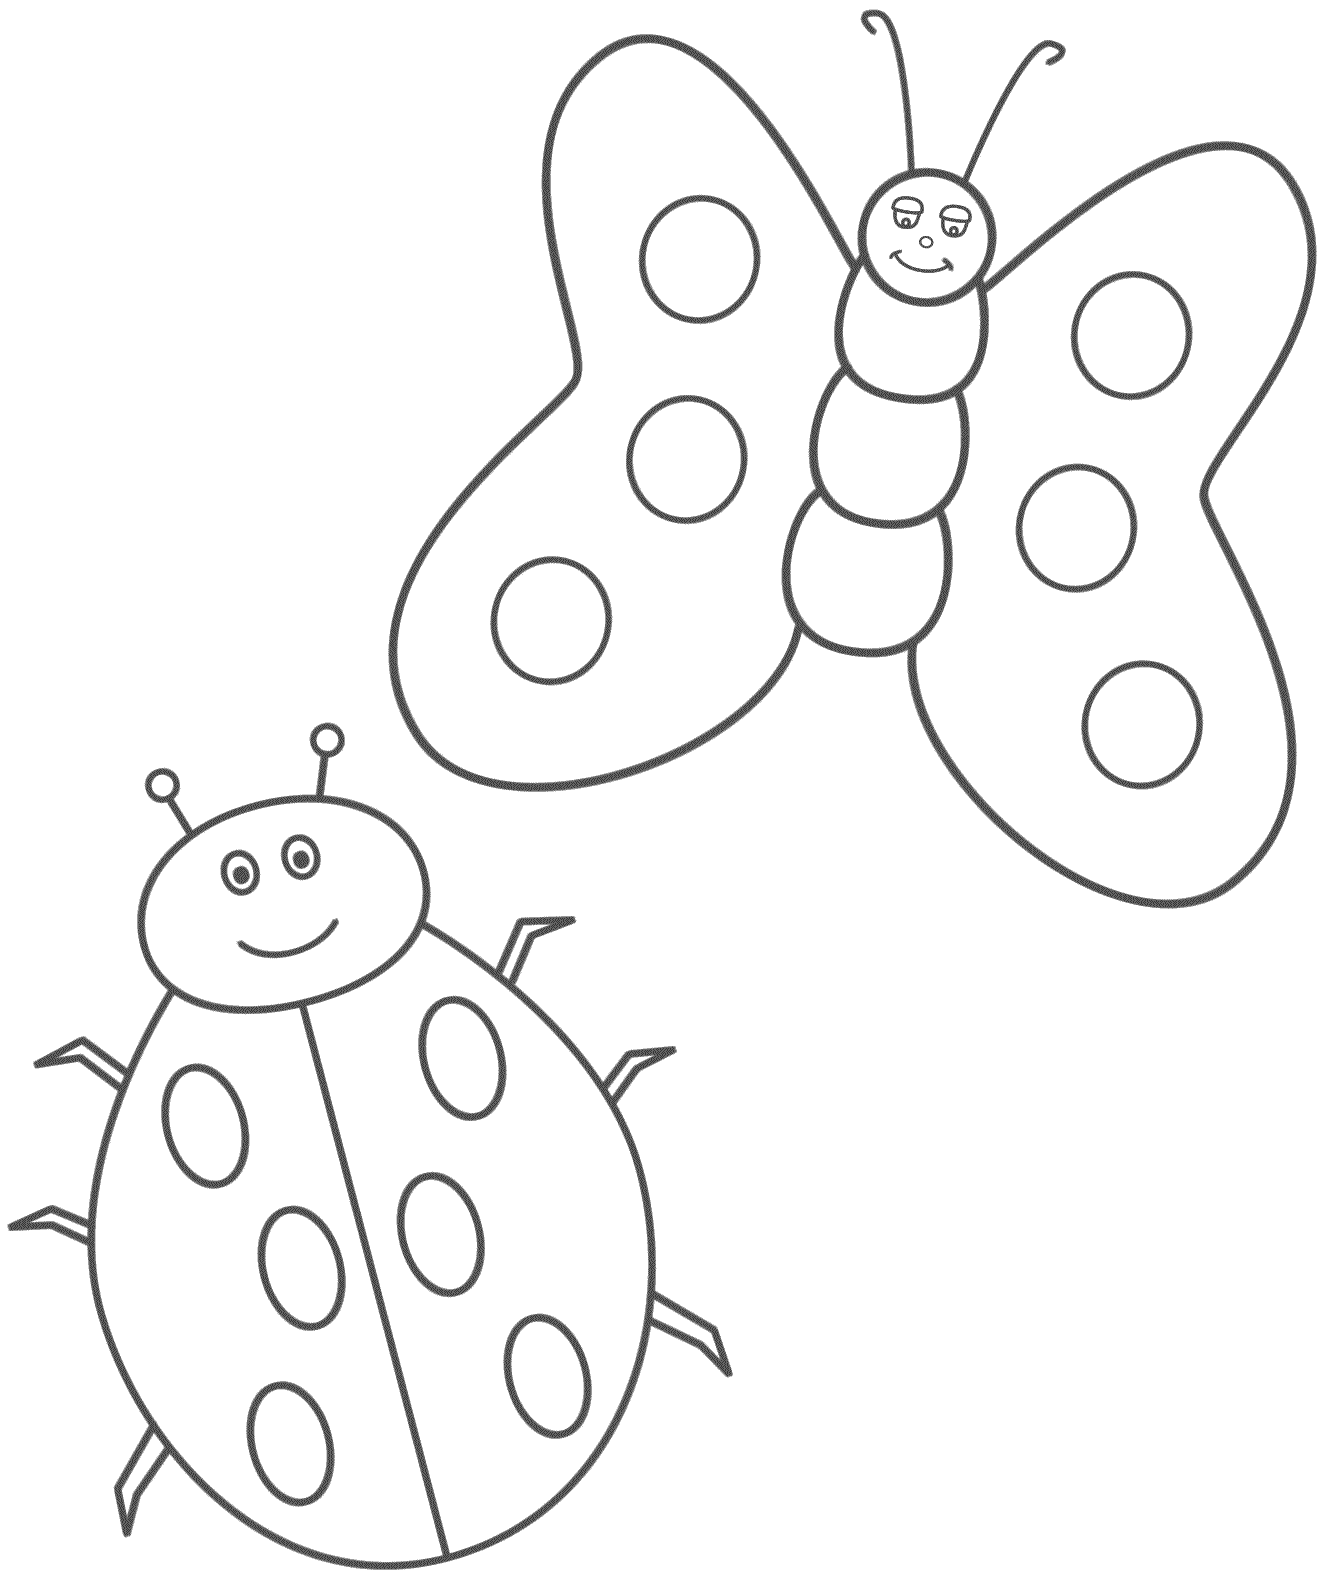 Coloring Page Ladybug Coloring Page Butterfly Coloring Page Bug Coloring Pages [ 1575 x 1325 Pixel ]